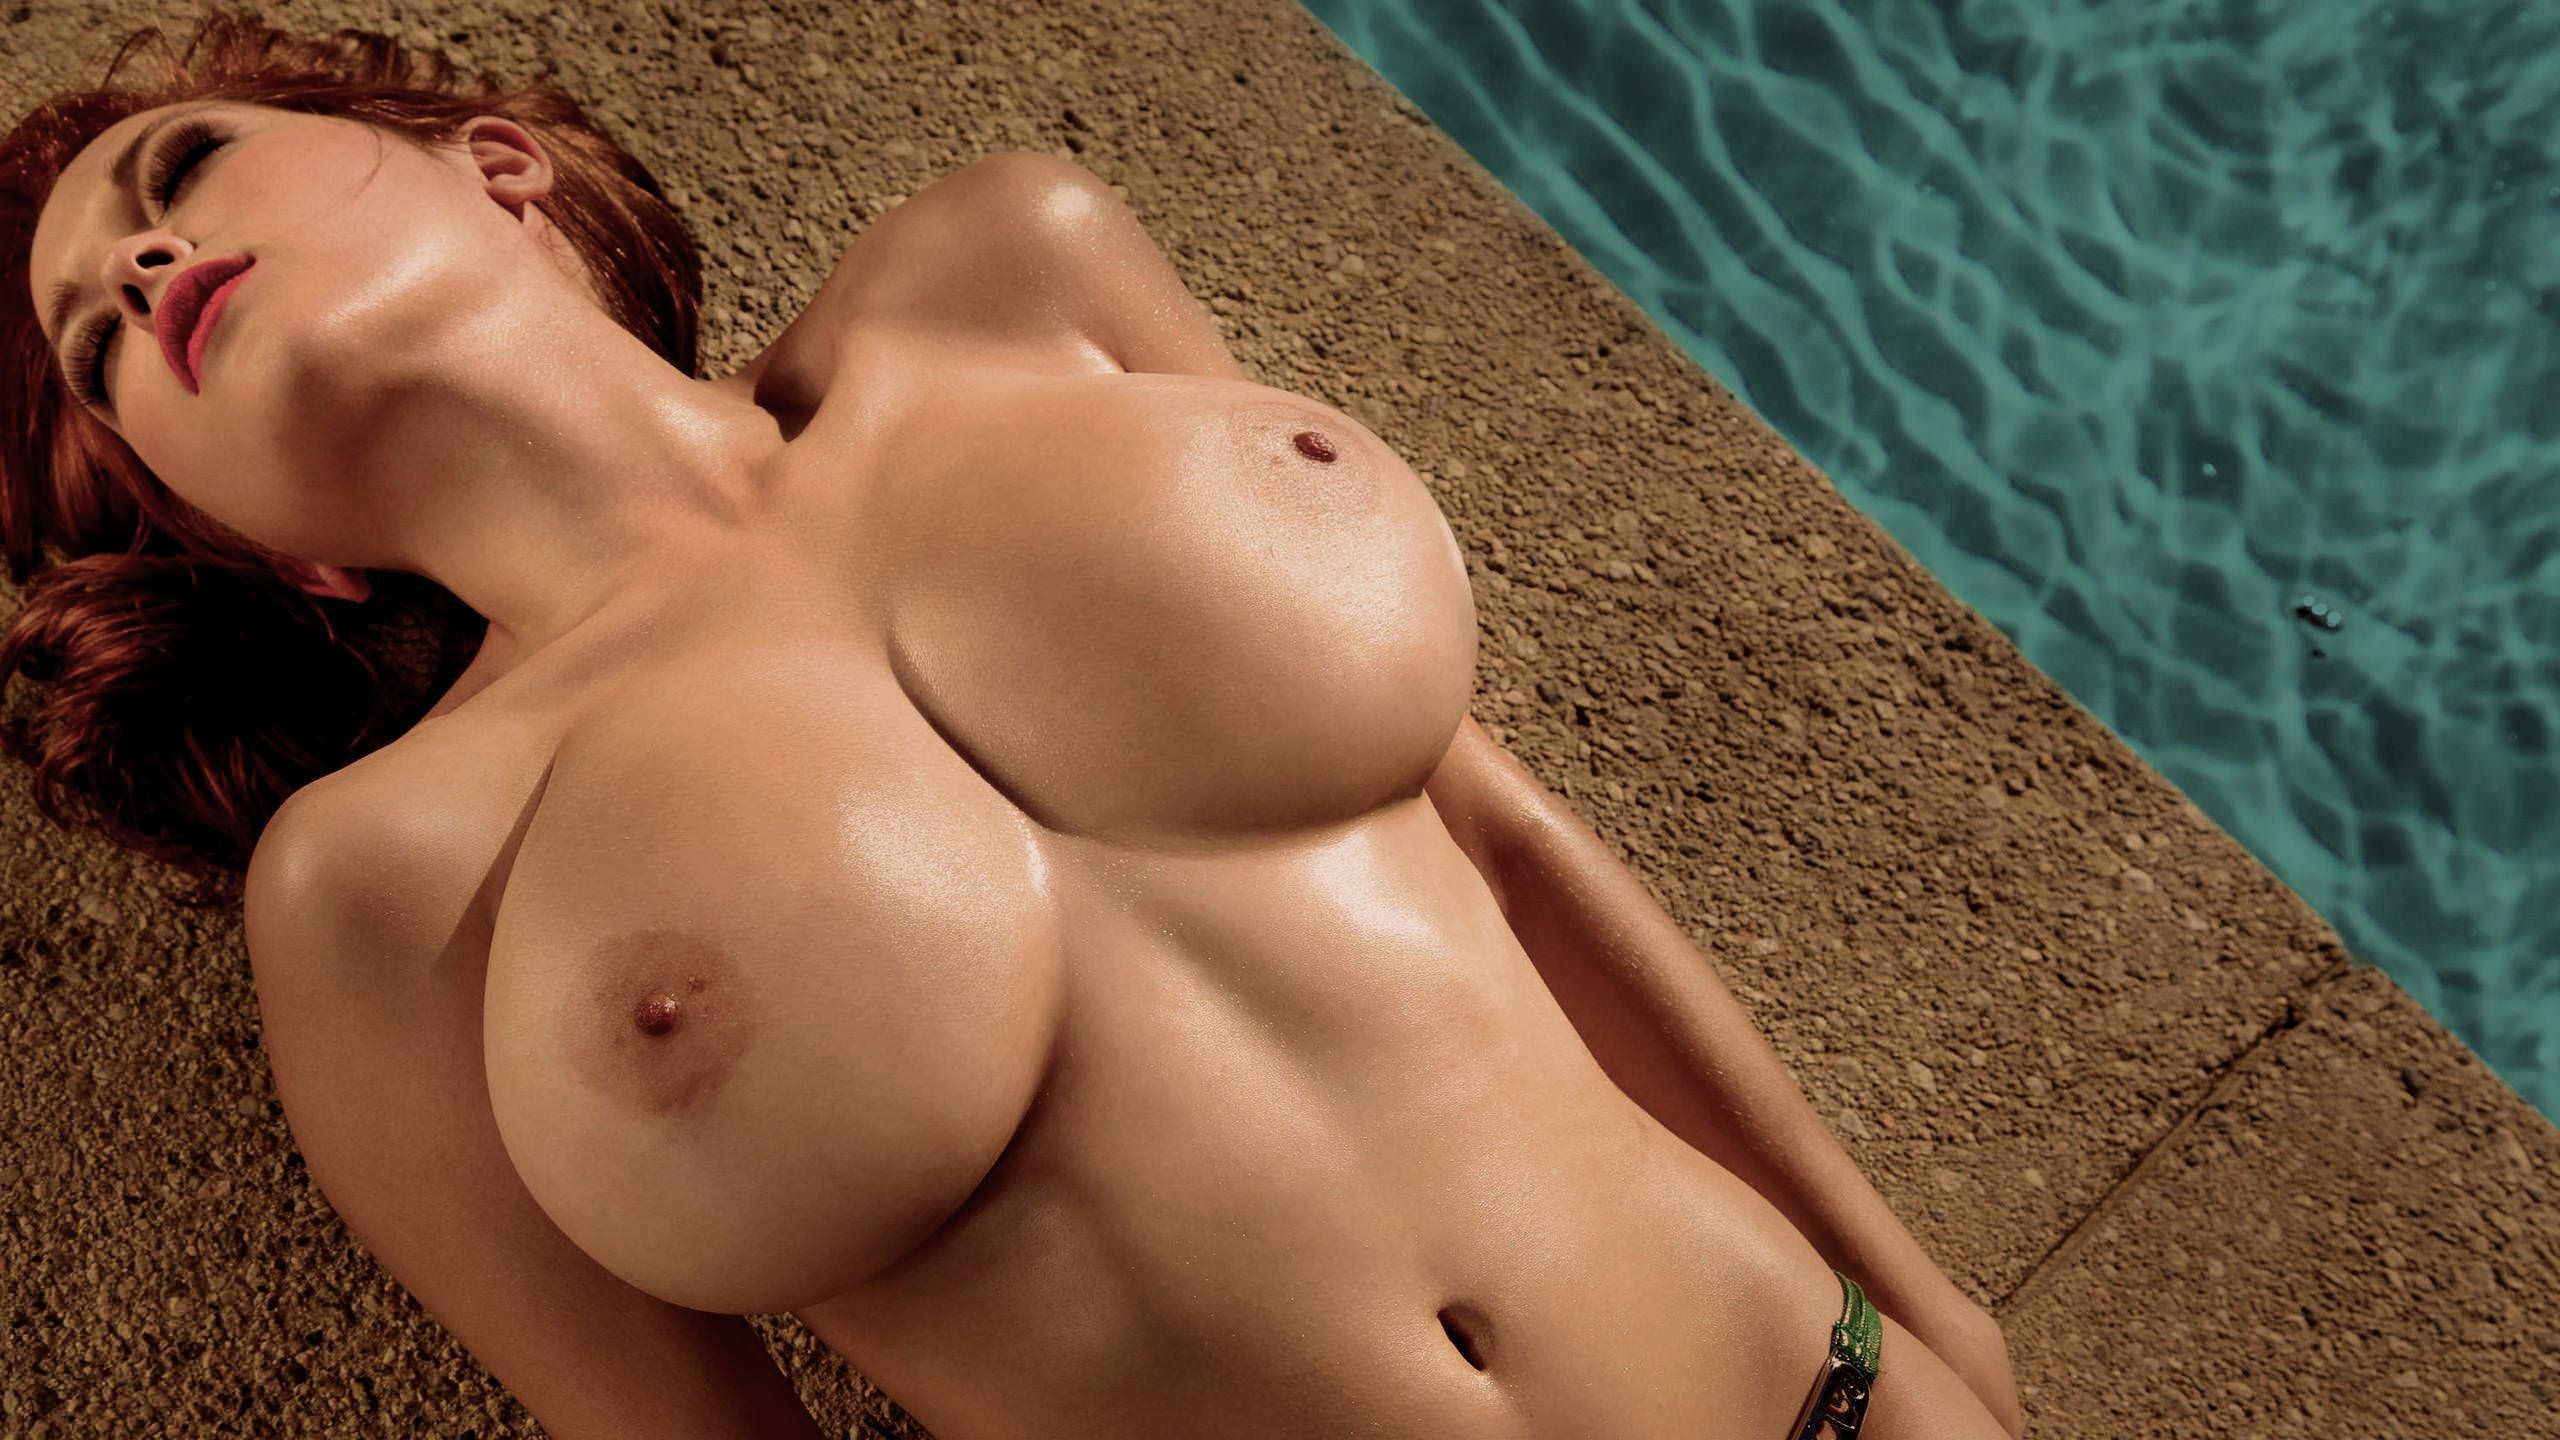 Sexy biggest boobs in the world nude